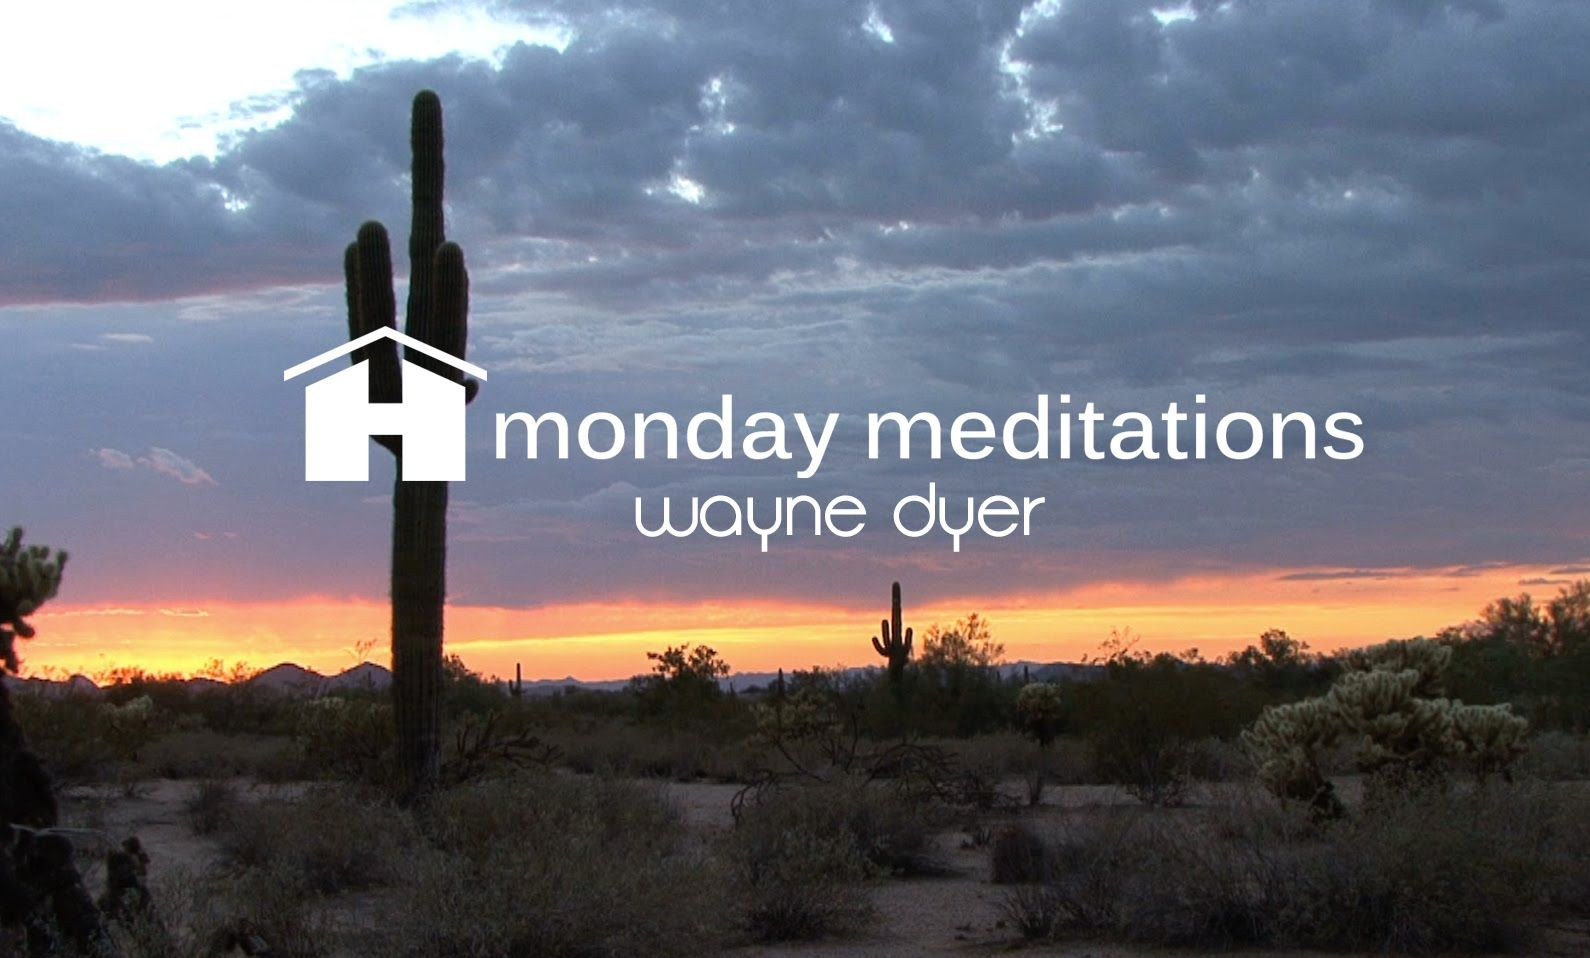 Power of Relaxation: Align Your Body, Your Mind, and Your Life Through Meditation